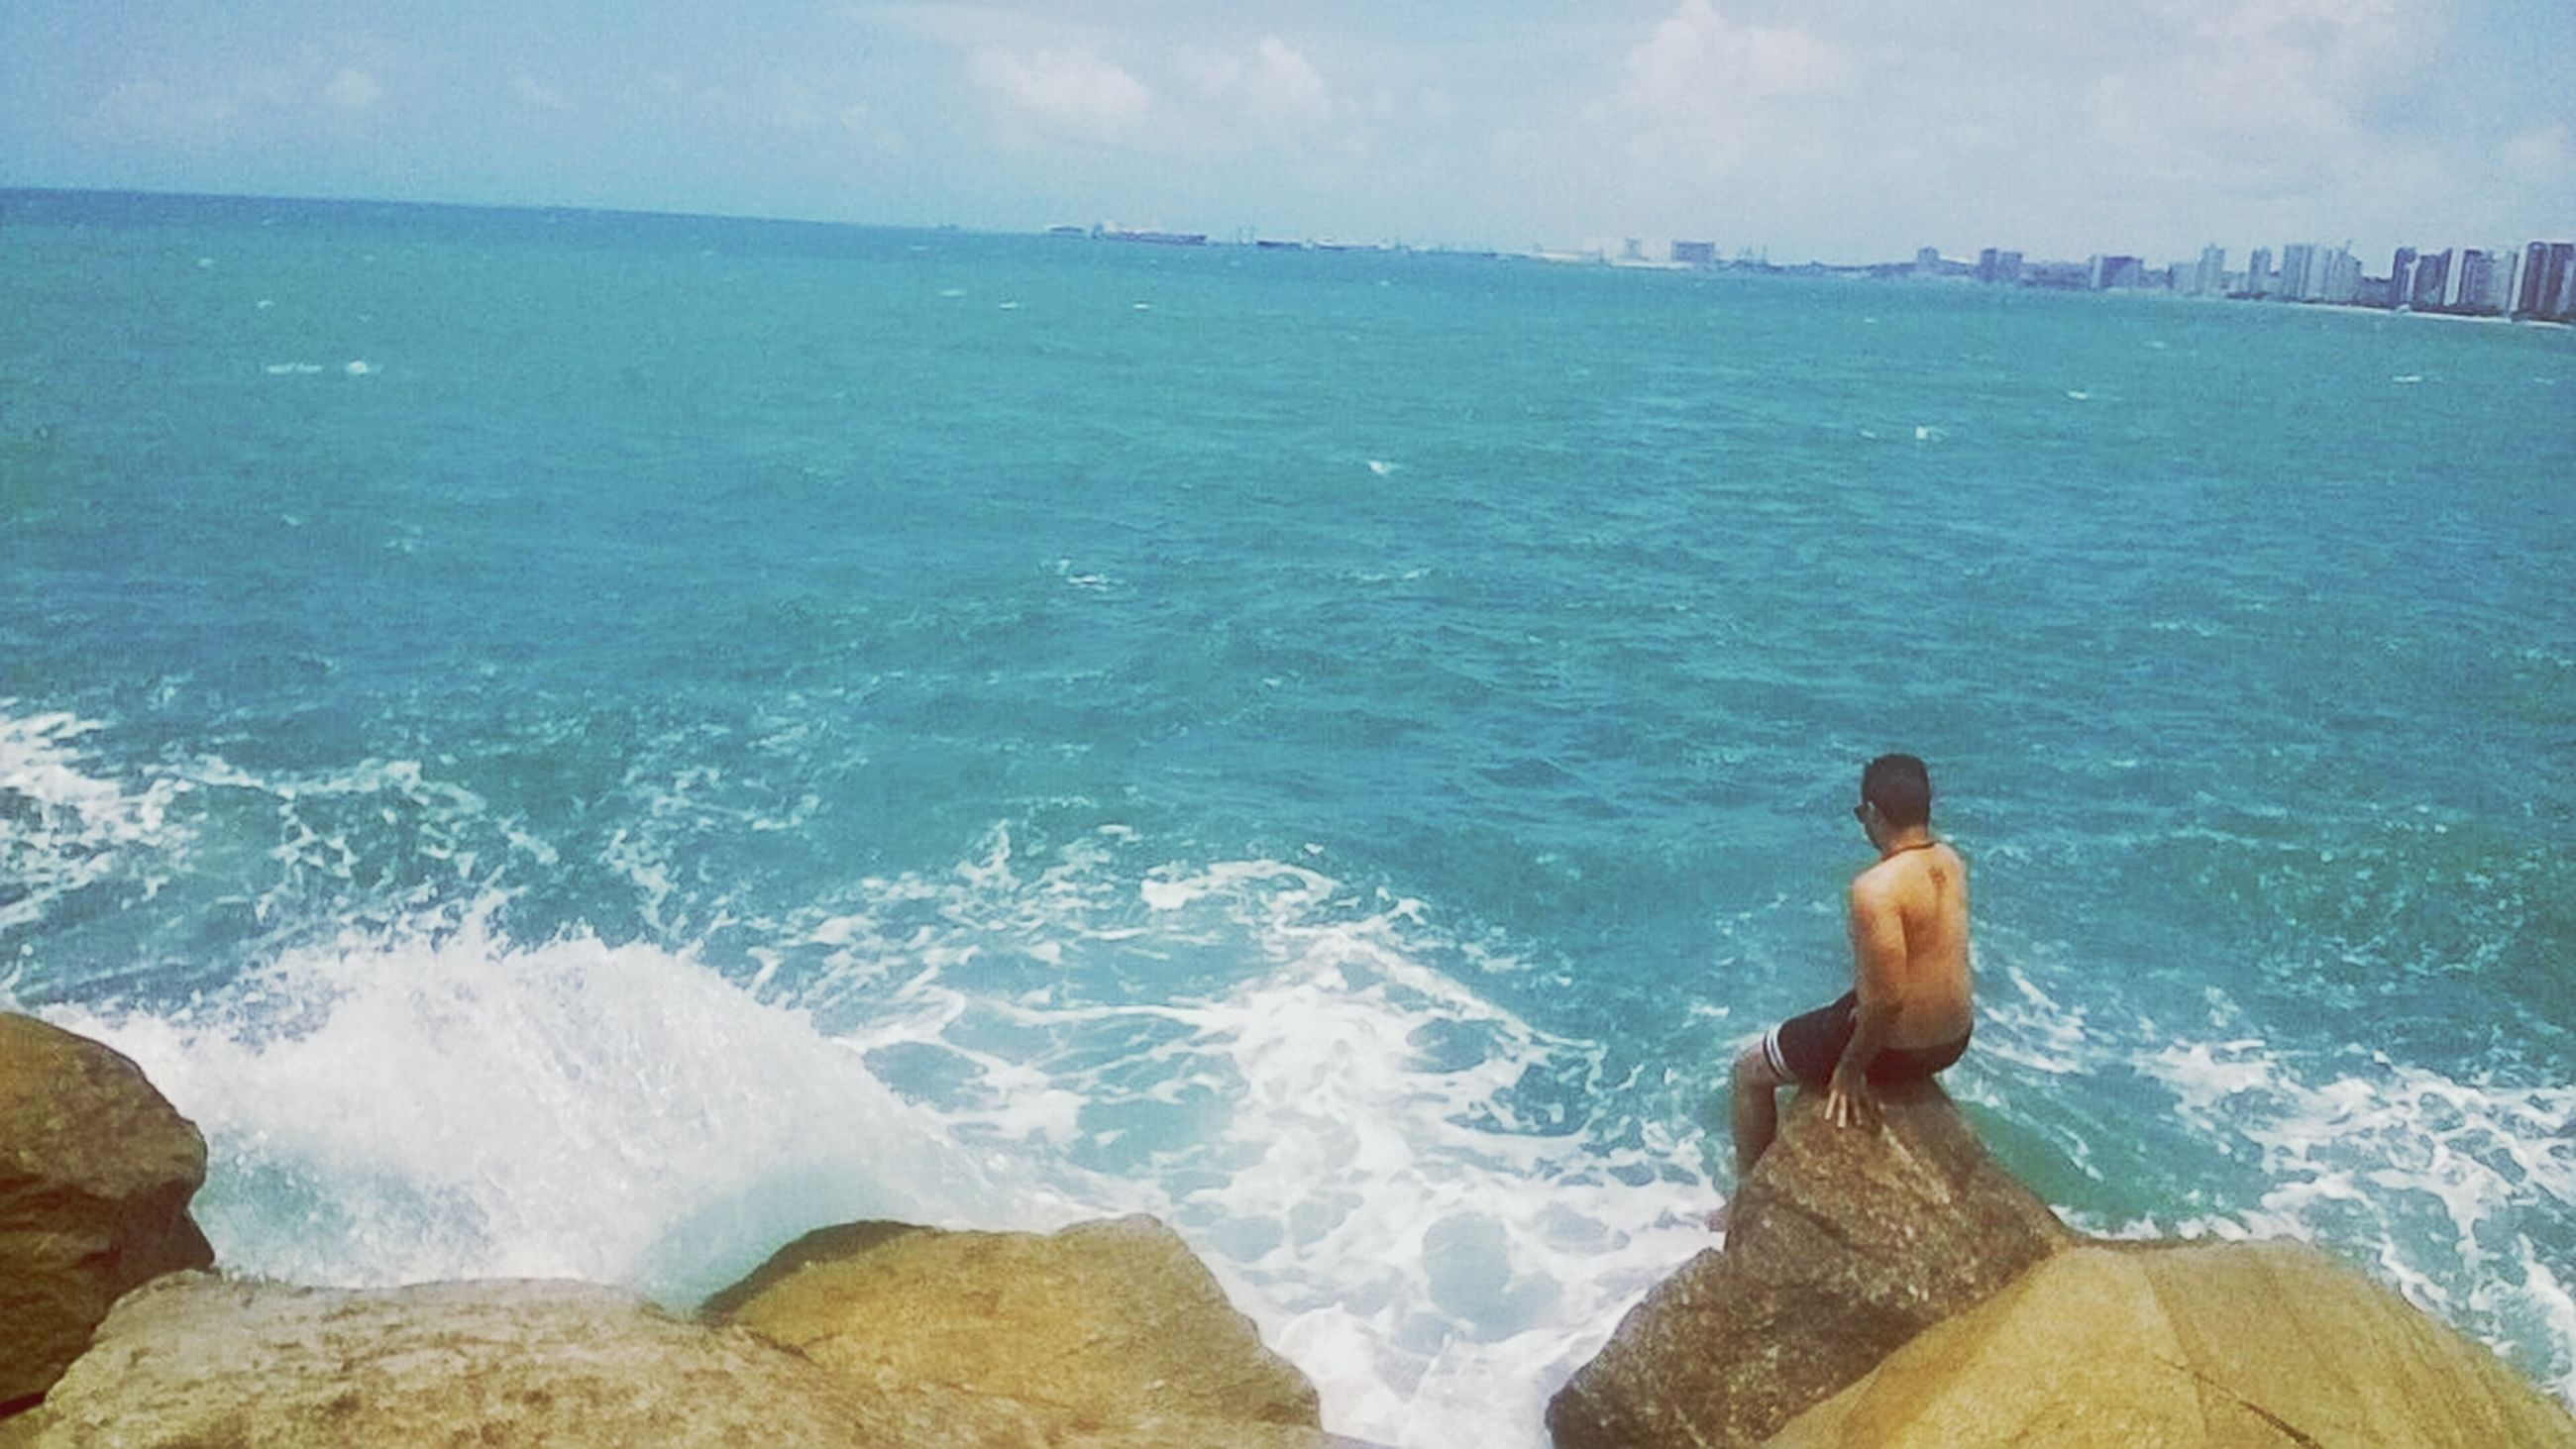 sea, water, rear view, real people, horizon over water, sky, beauty in nature, outdoors, day, wave, one person, beach, motion, leisure activity, men, scenics, nature, women, people, adult